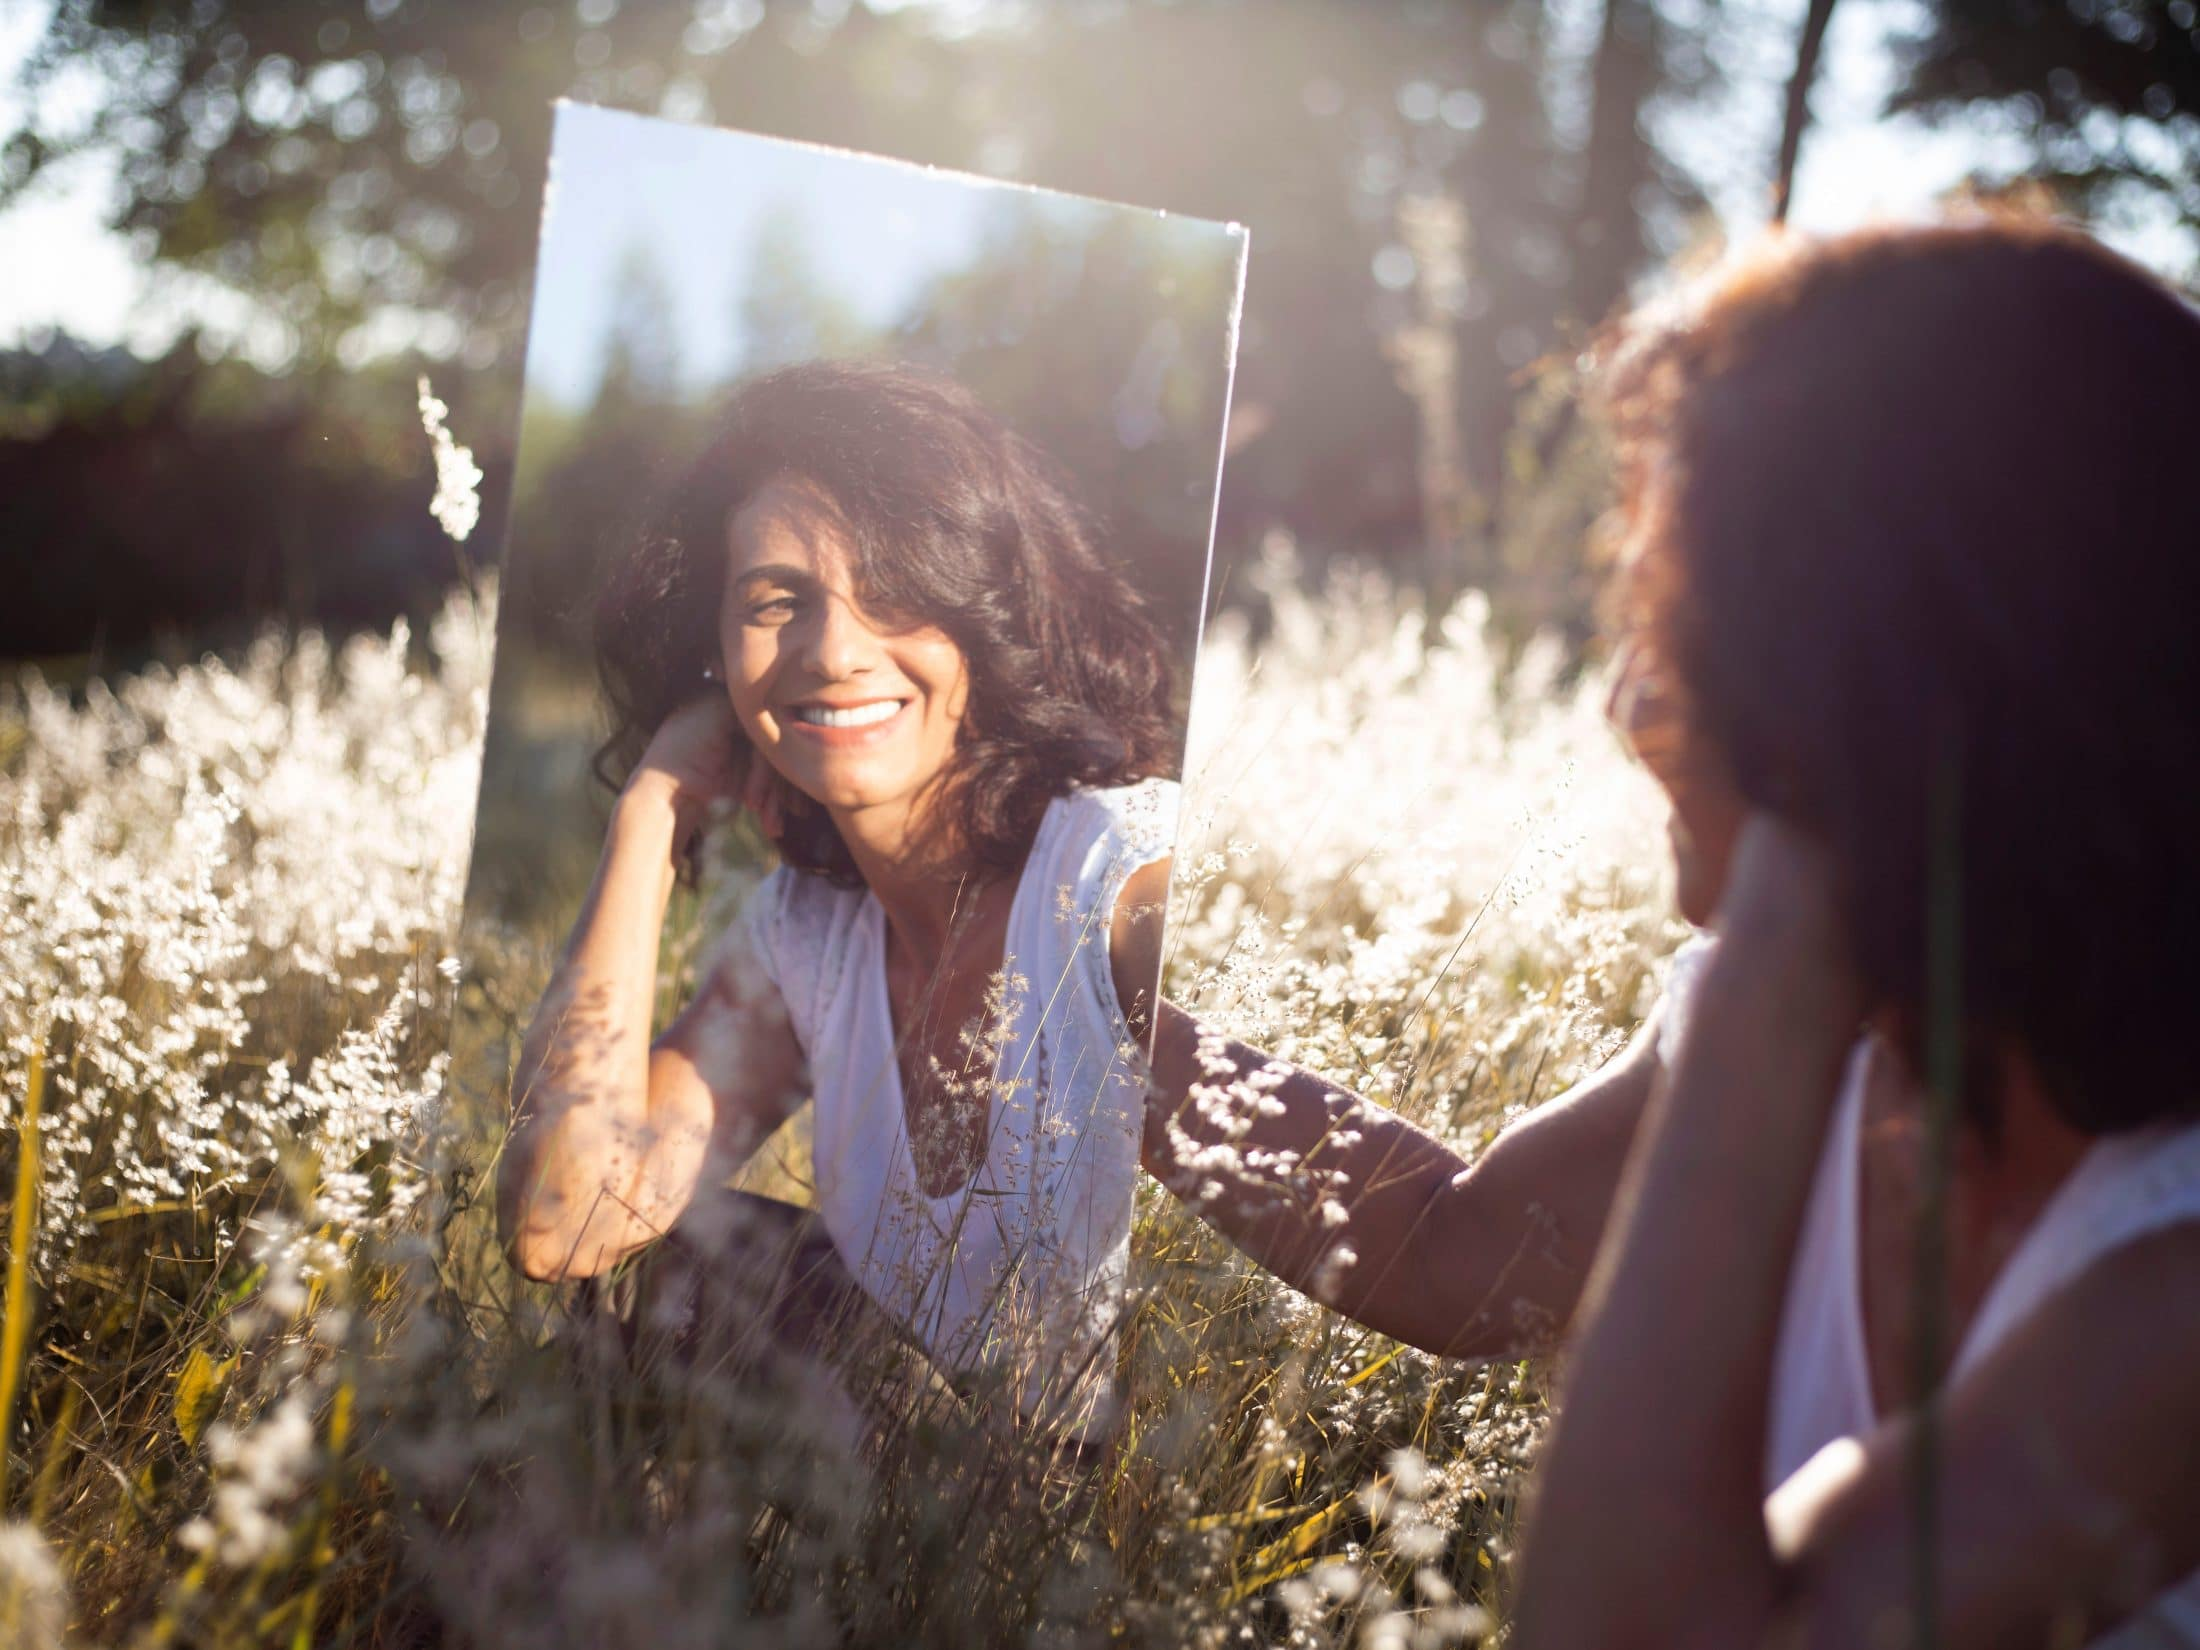 A happy woman outdoors, smiling in a mirror